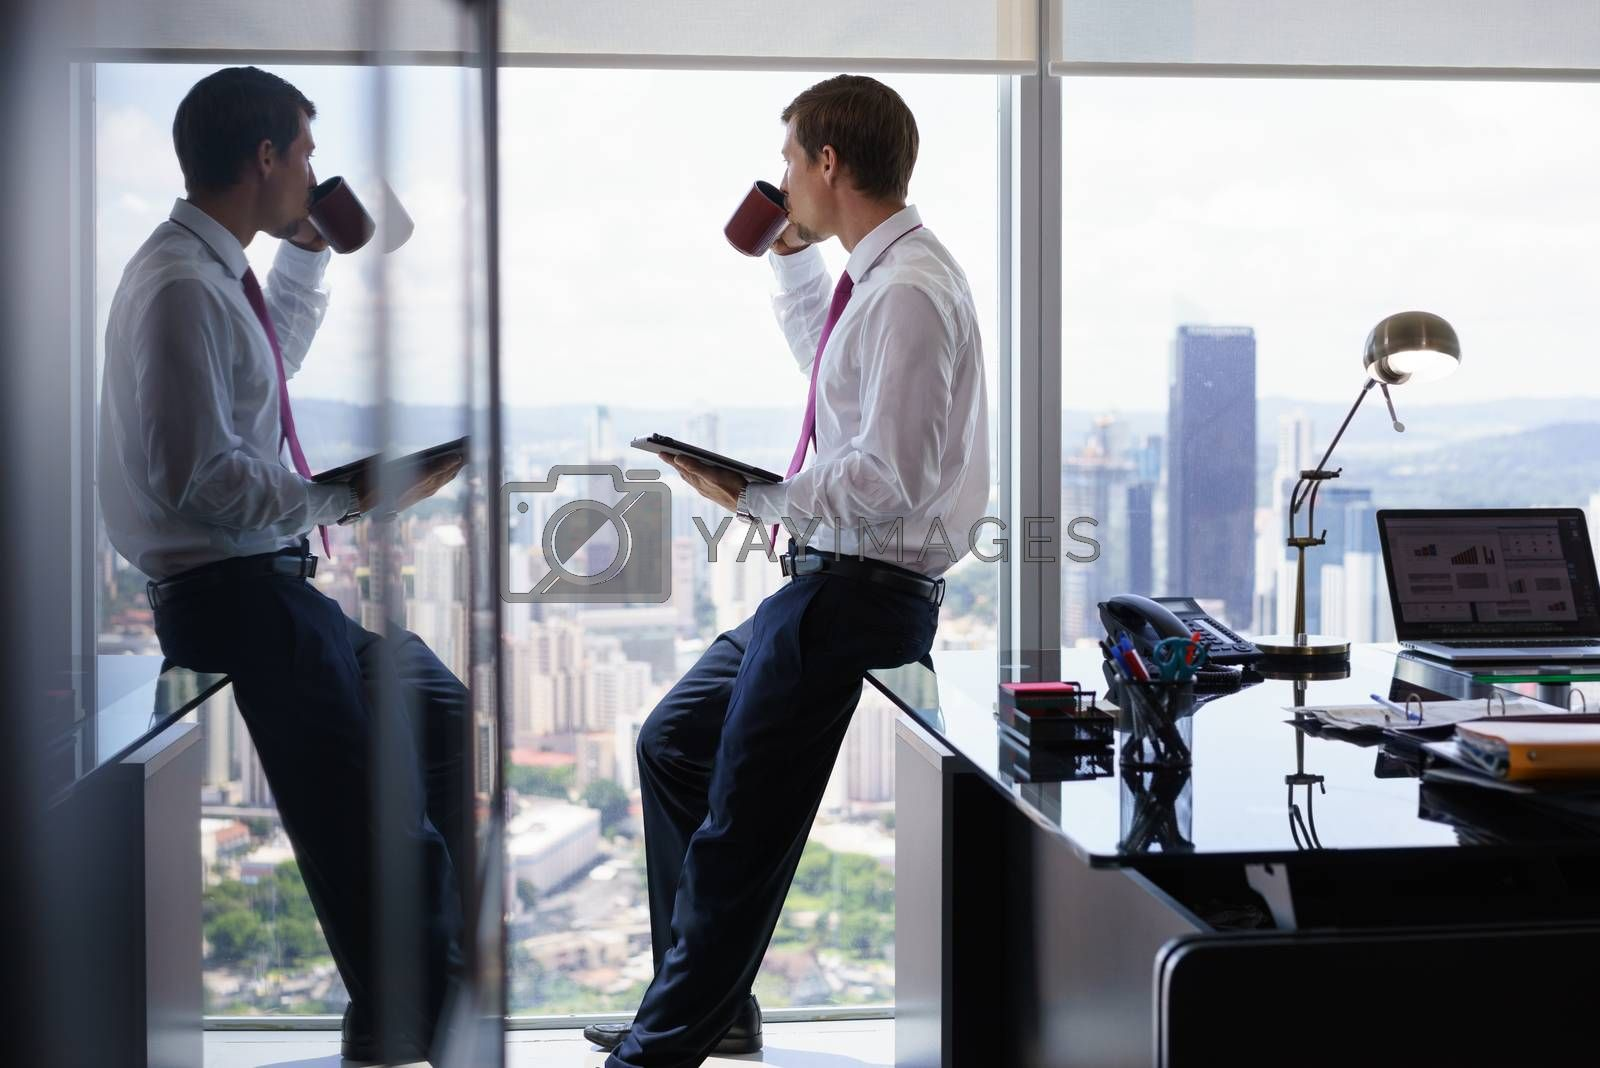 Adult businessman sitting on desk in modern office and reading news on tablet pc with a cup of coffee. The man looks out of the window and contemplates the city and skyscrapers.